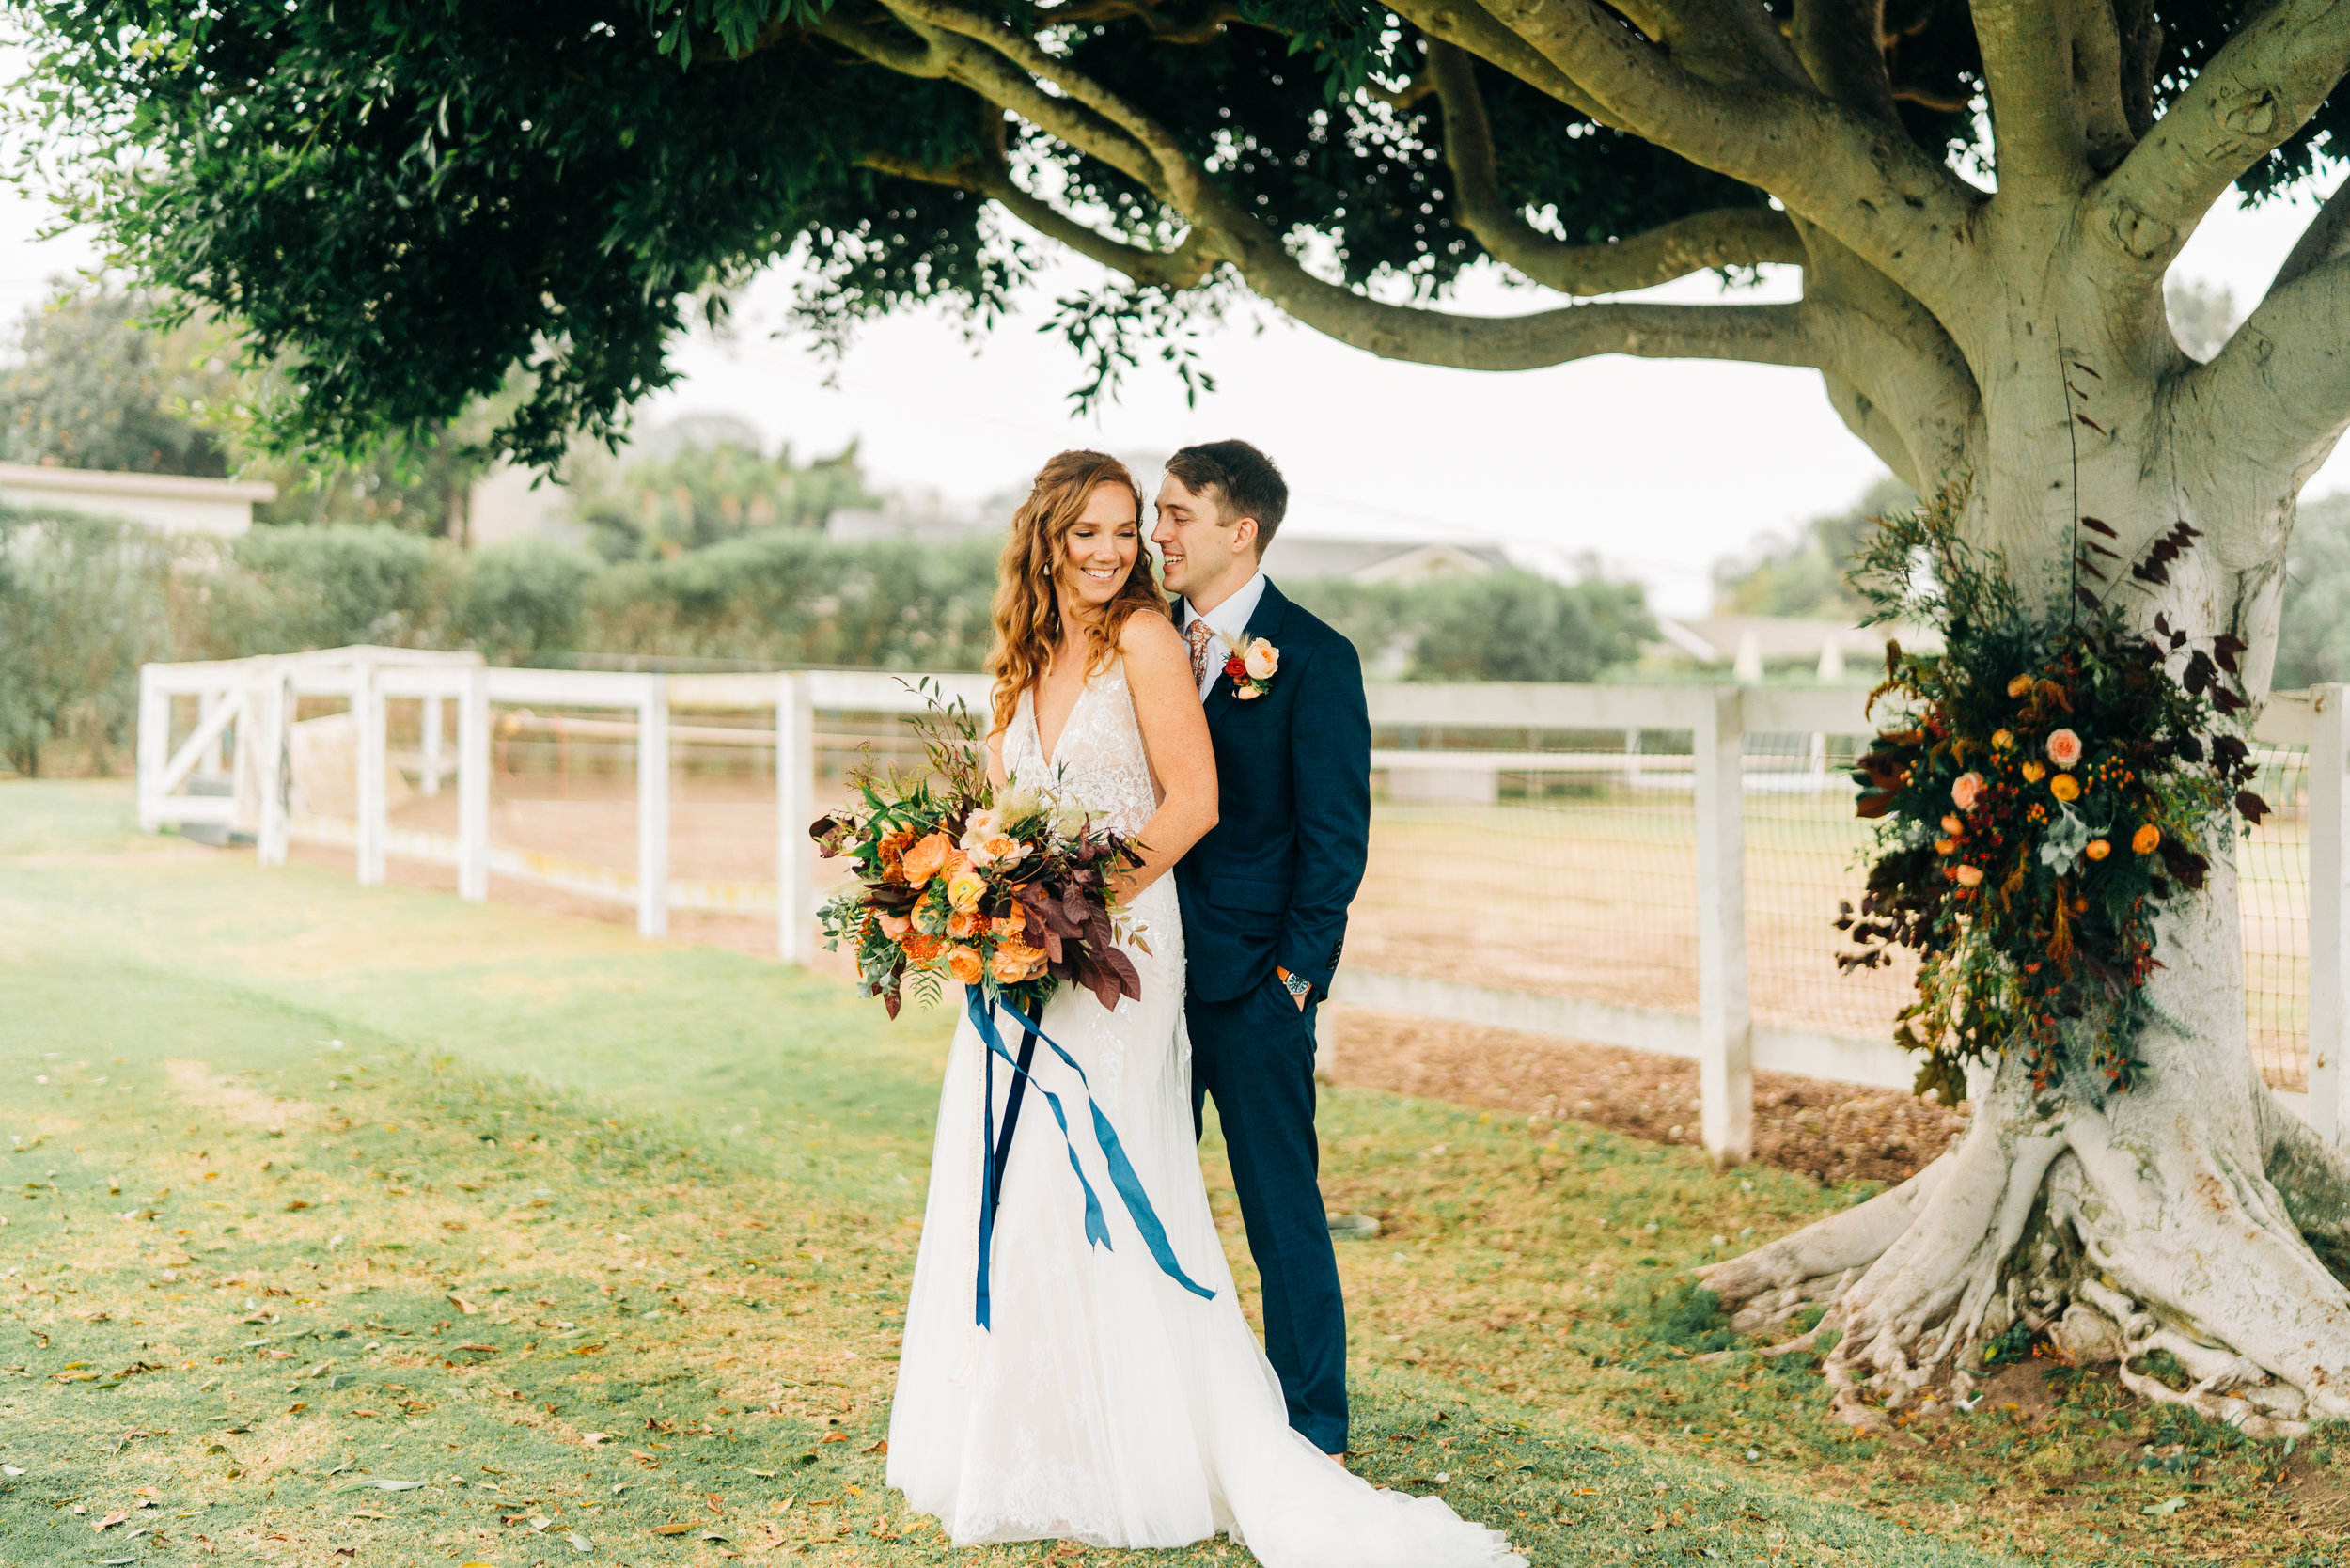 www.santabarbarawedding.com | Brandon Bibbins Photography | The Cottages at Polo Run | Christina Welch Floral | Couple Shares a Moment